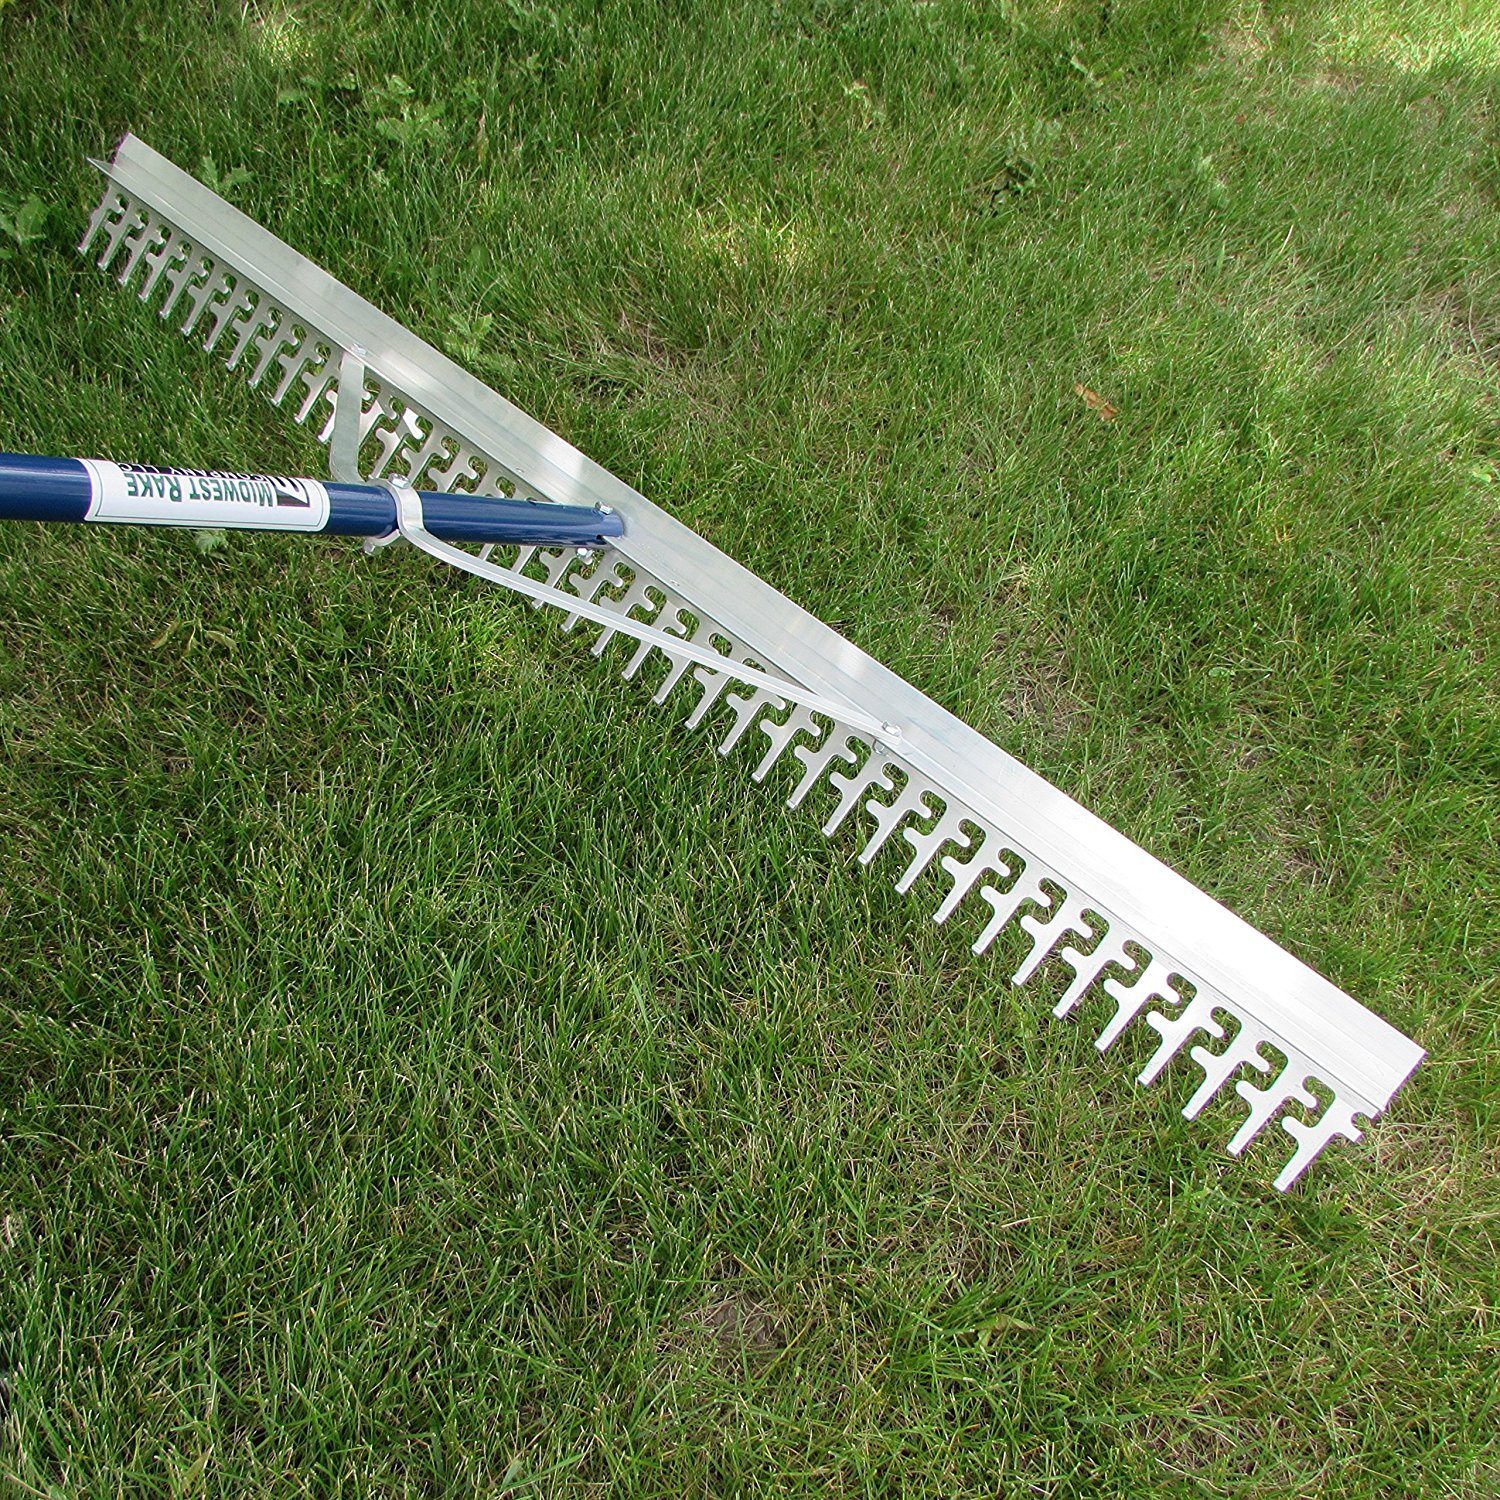 Super 4-Ft Wide Heavy Duty Rake with Extendable 16-Ft Lon...